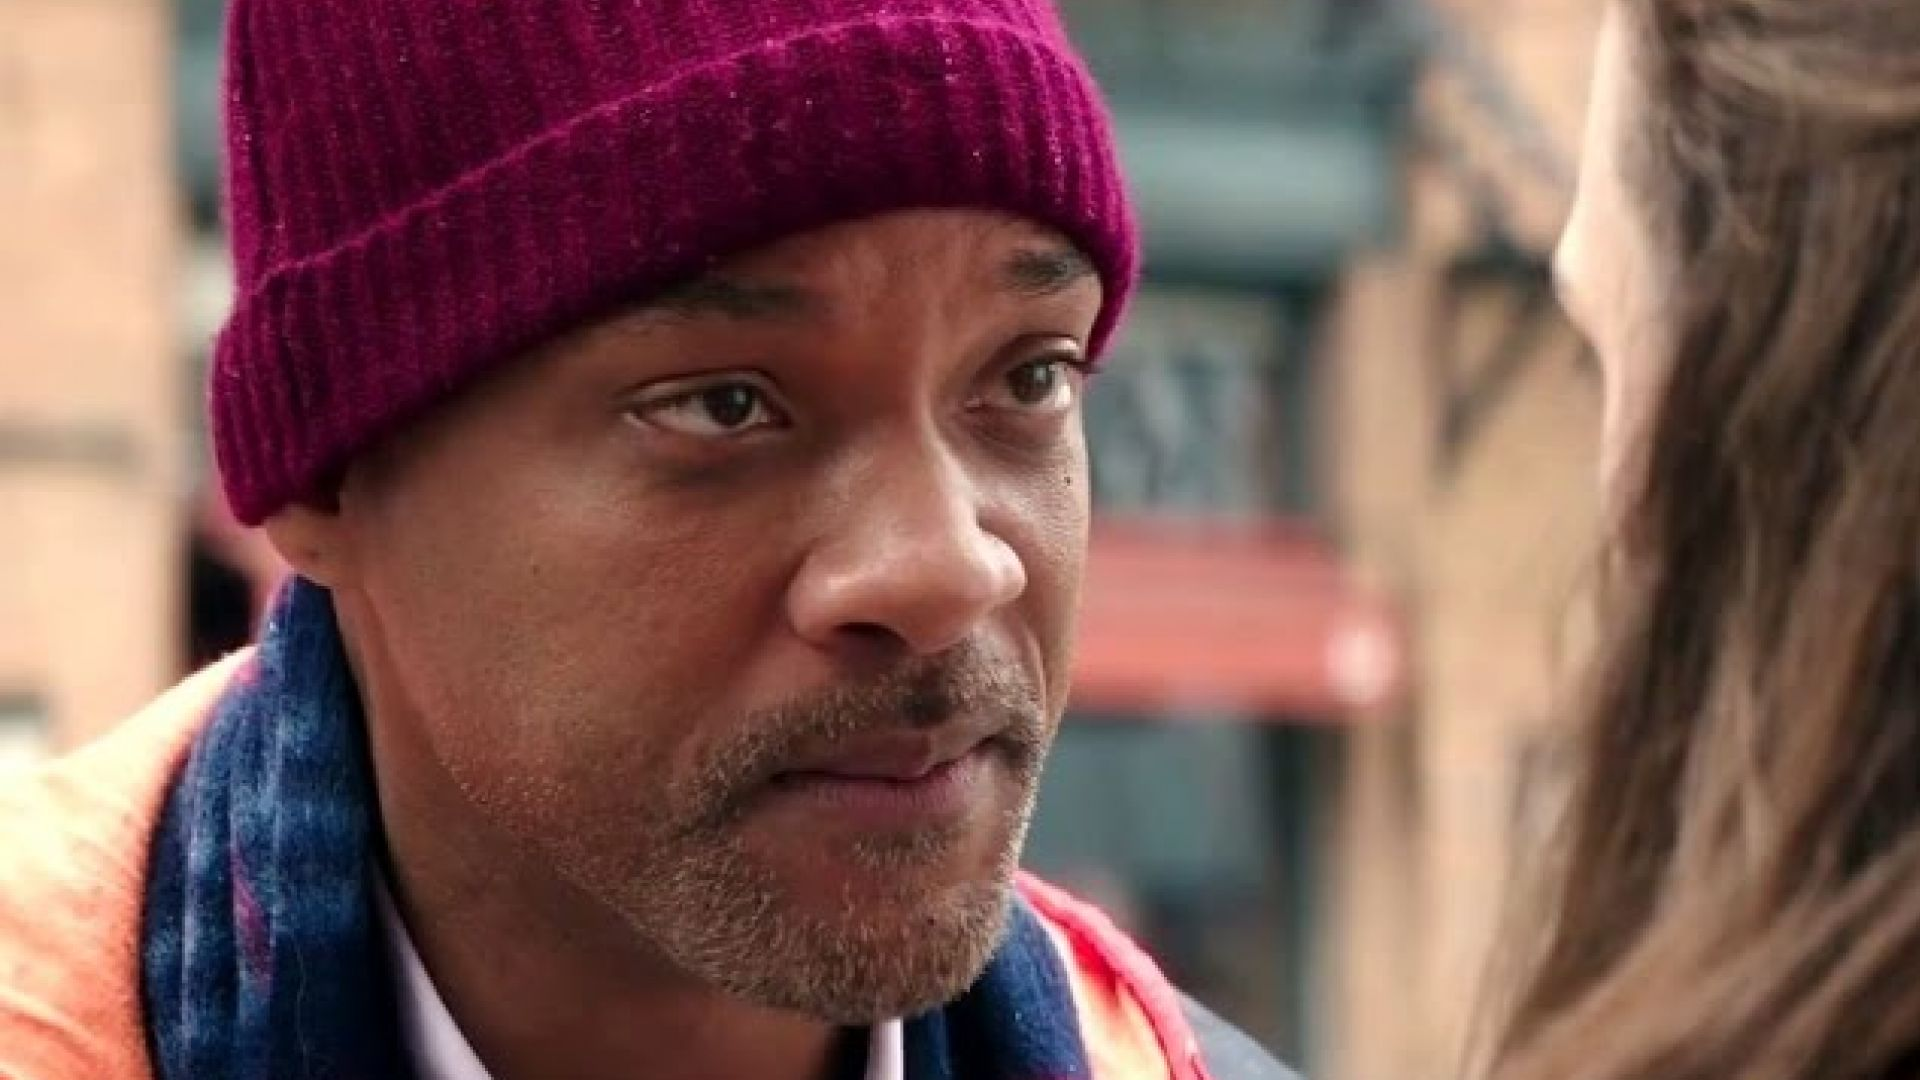 First official trailer for Will Smith, Keira Knightley's hig